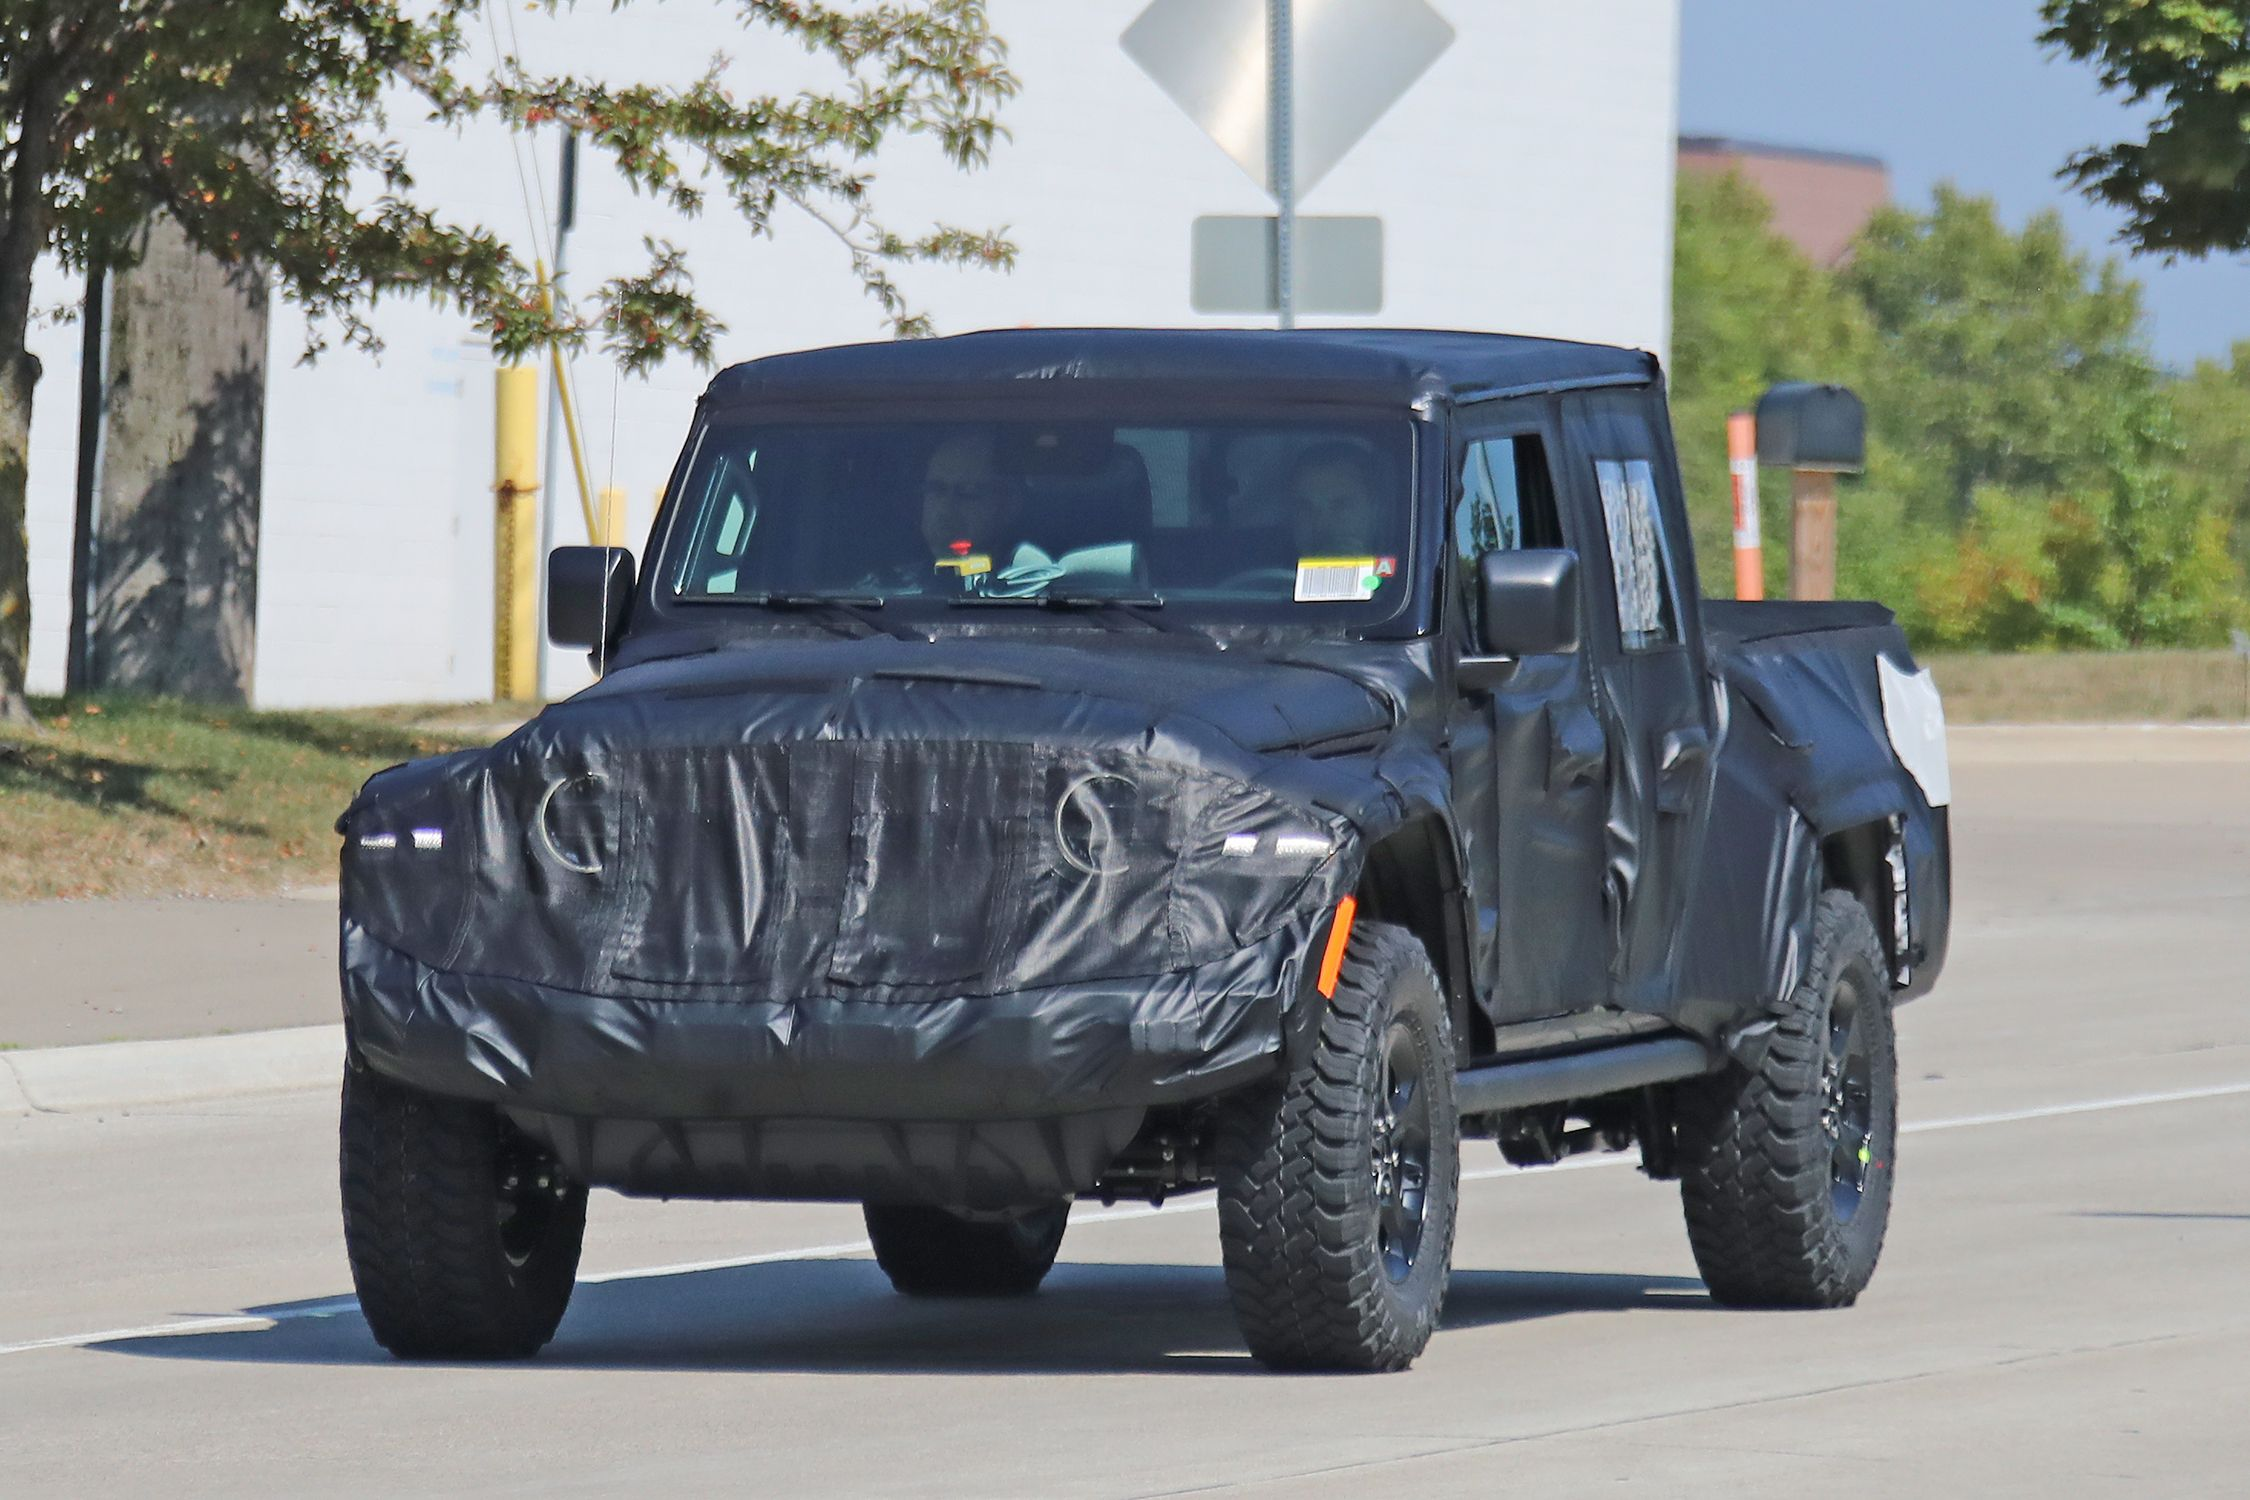 Marvelous Every Angle Of The Jeep Wrangler Pickup Truck